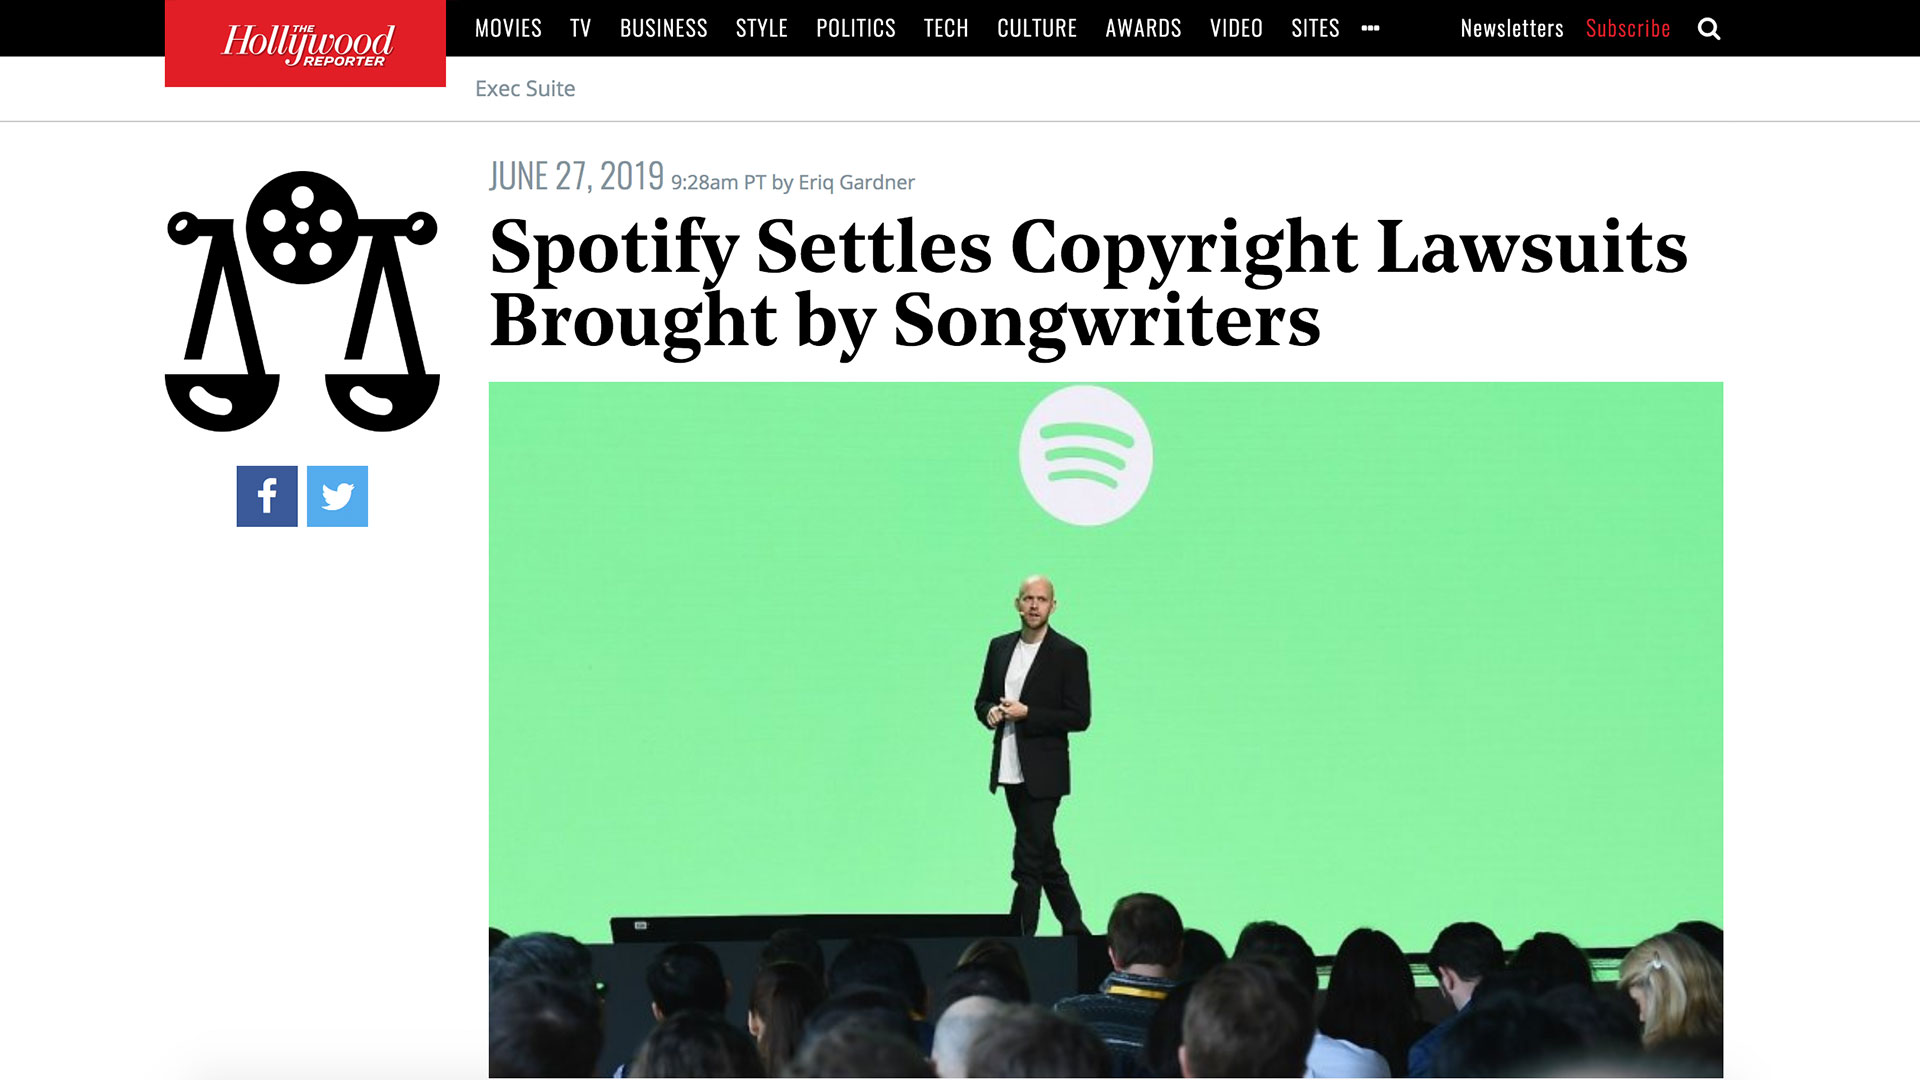 Fairness Rocks News Spotify Settles Copyright Lawsuits Brought by Songwriters